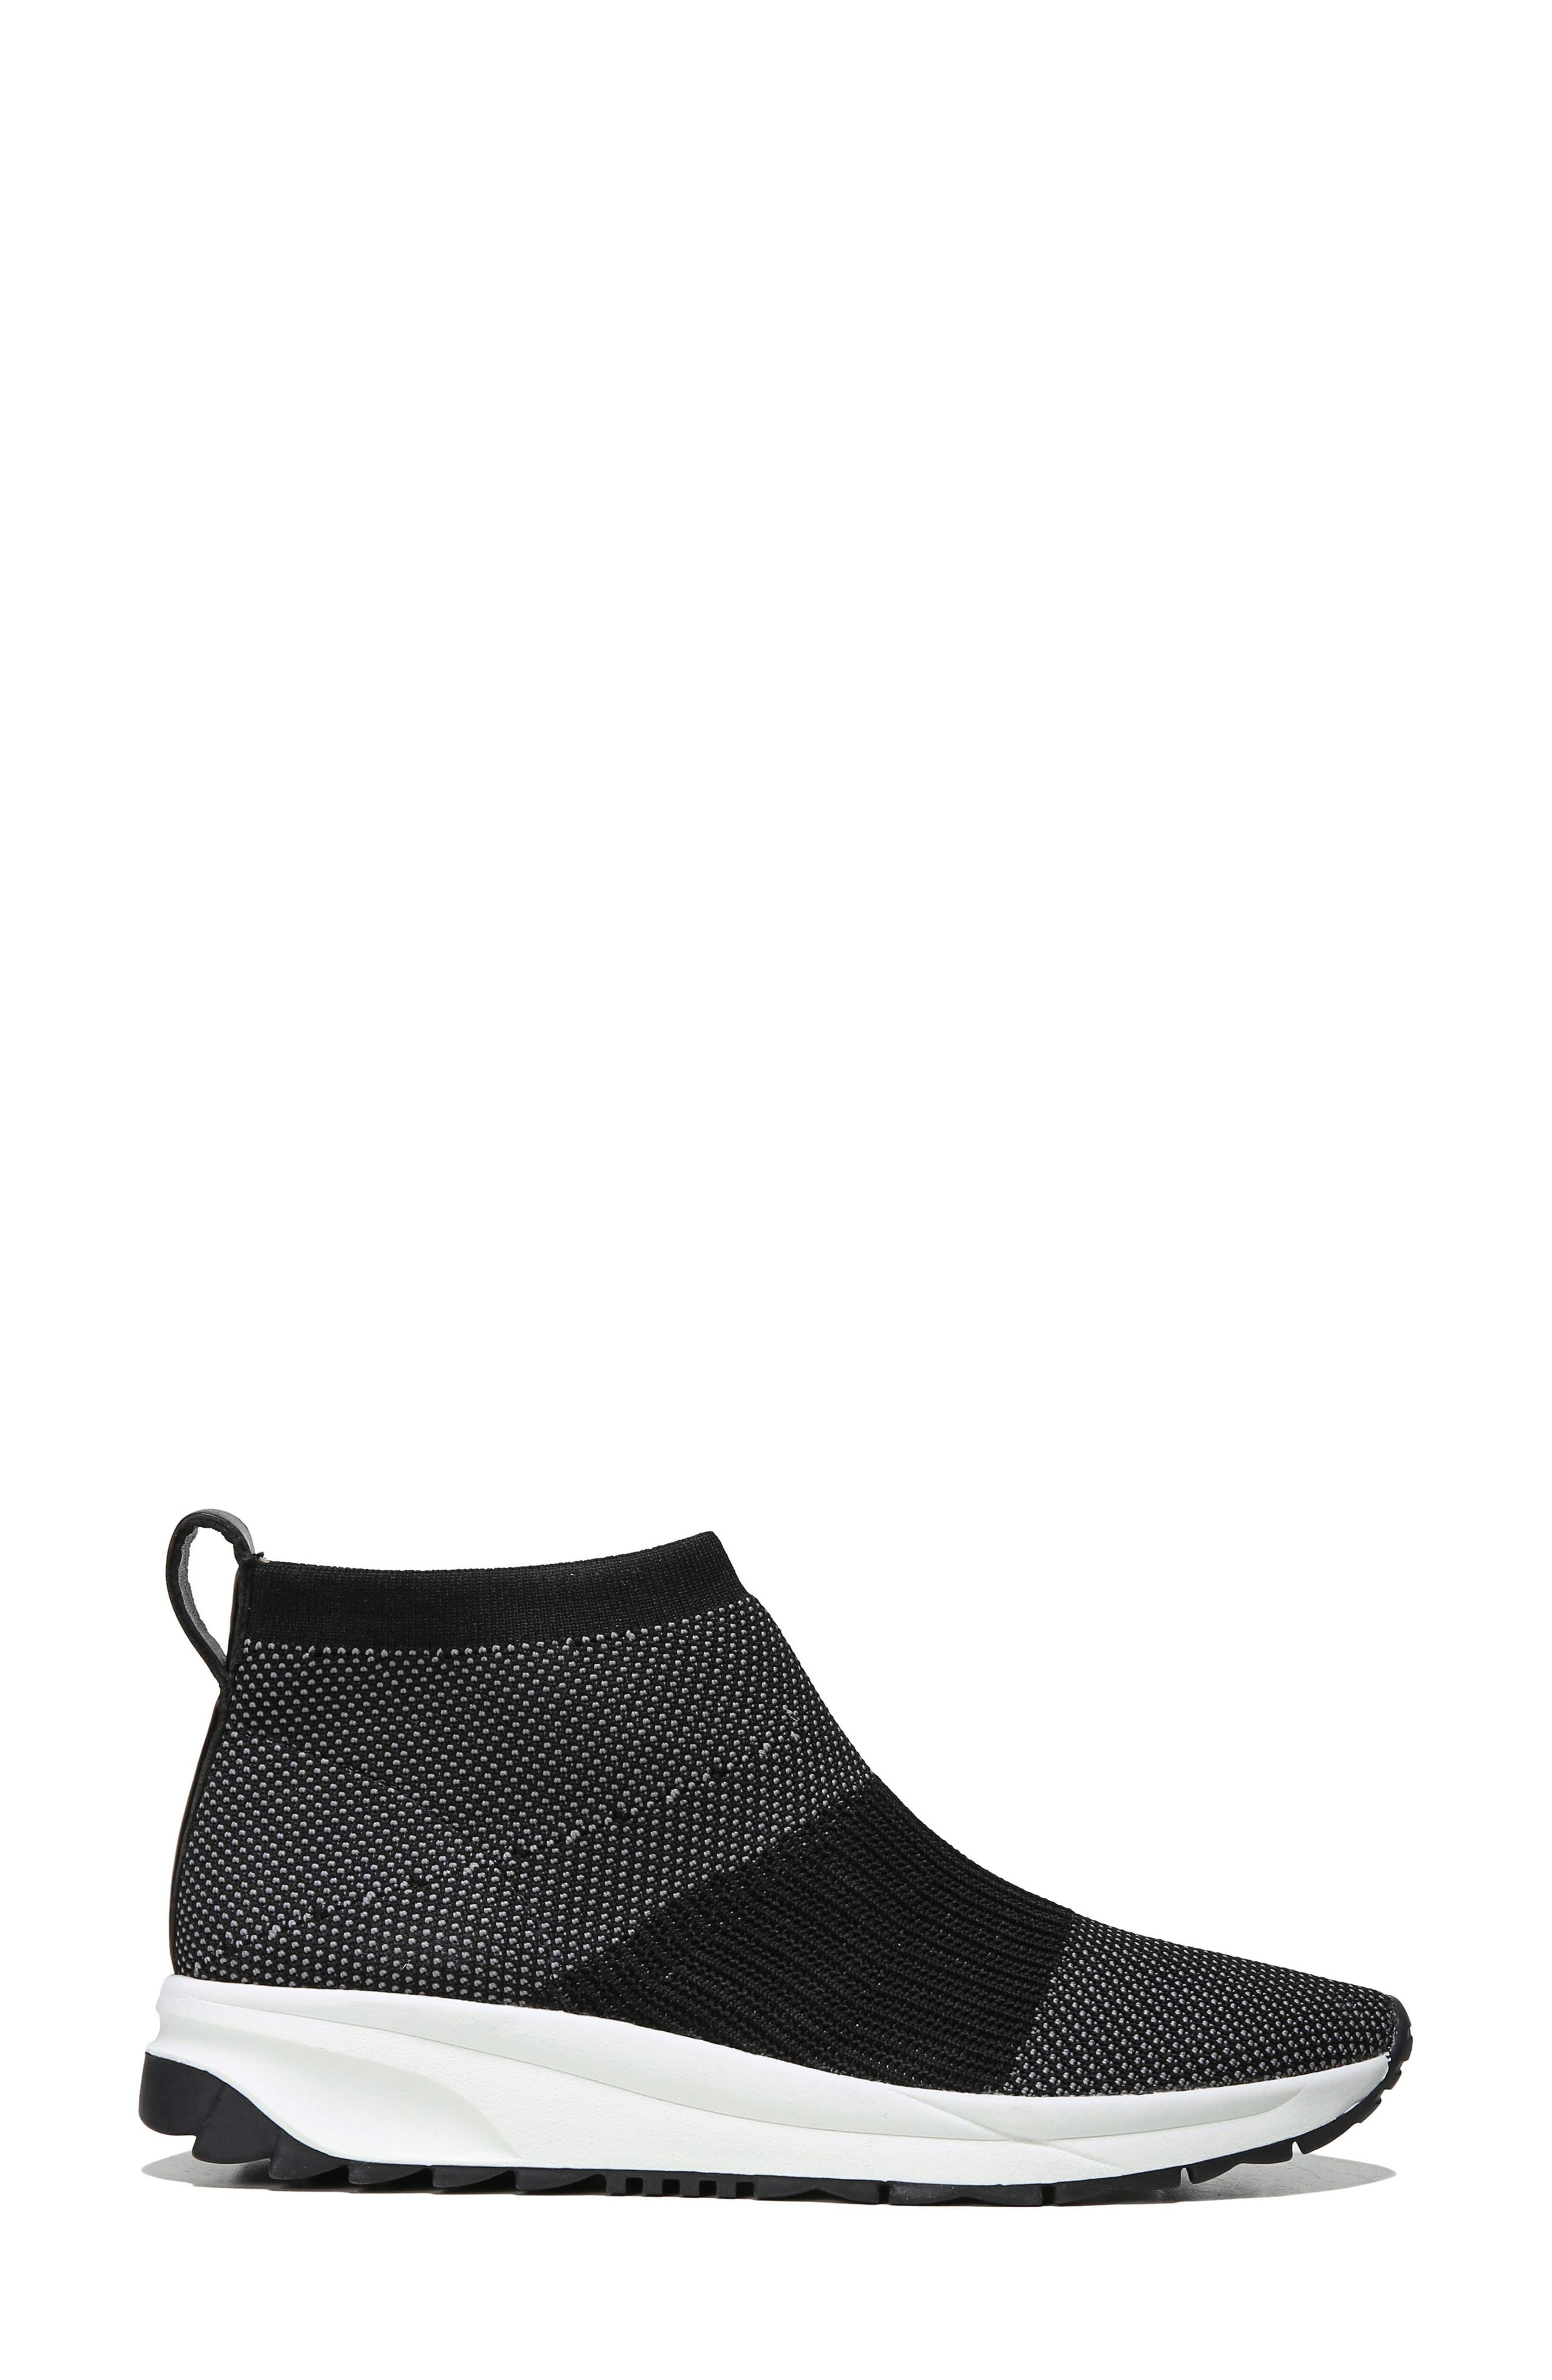 Selena Sneaker Boot,                             Alternate thumbnail 3, color,                             Black Stretch Fabric